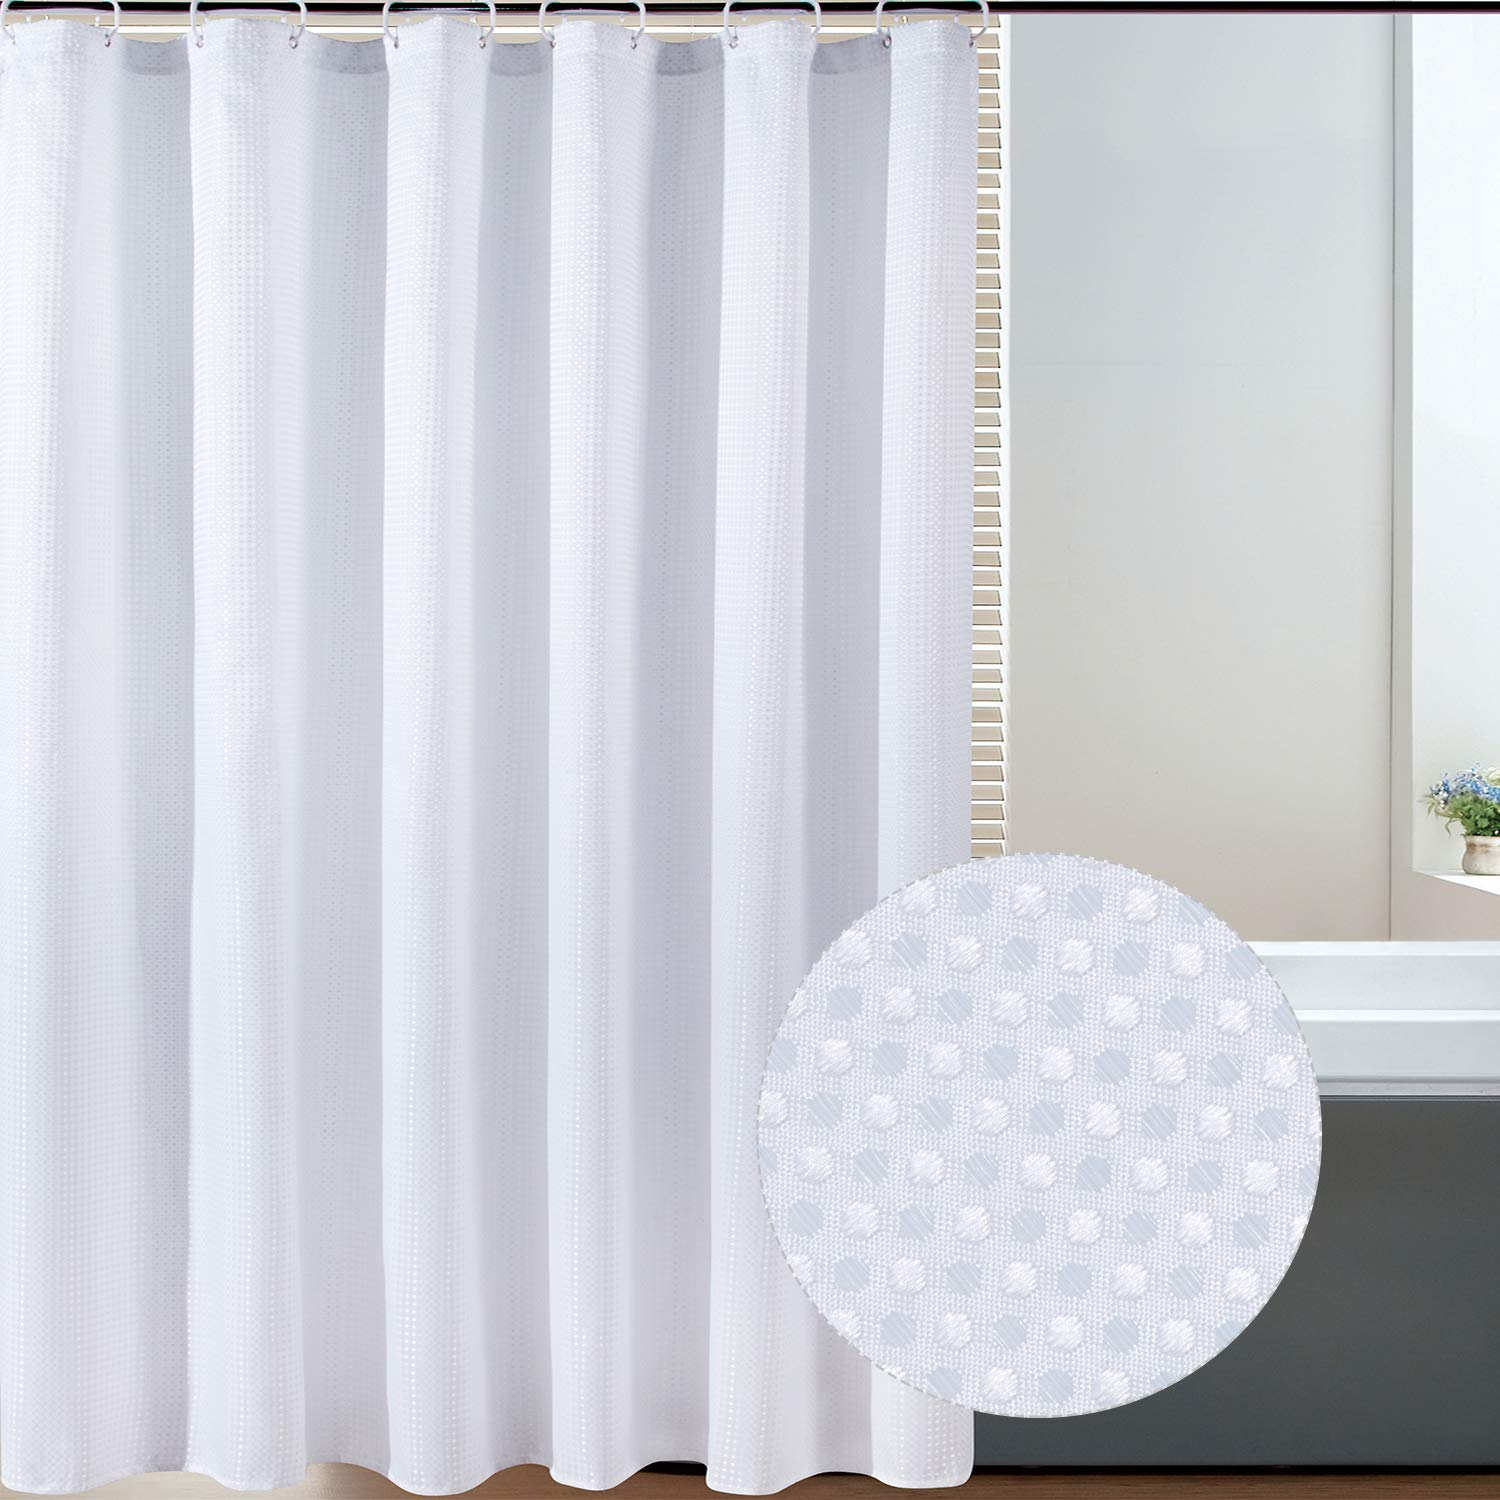 bermino textured fabric bath shower curtain white shower curtains for bathroom with 12 hooks 70 x 72 inch white